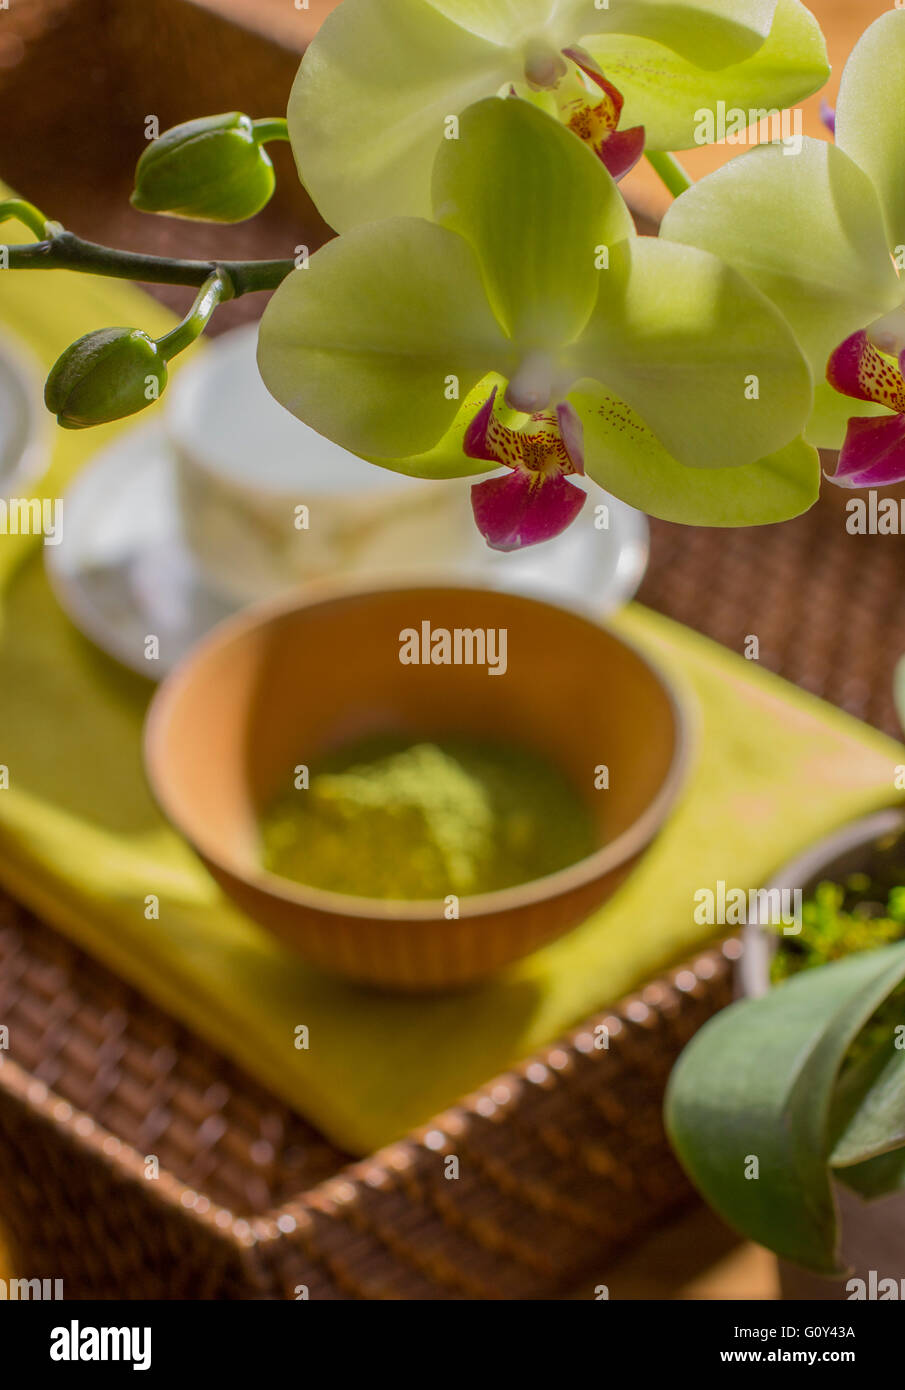 Orchids with Matcha Green Tea Powder and Tea Cup in Background - Stock Image